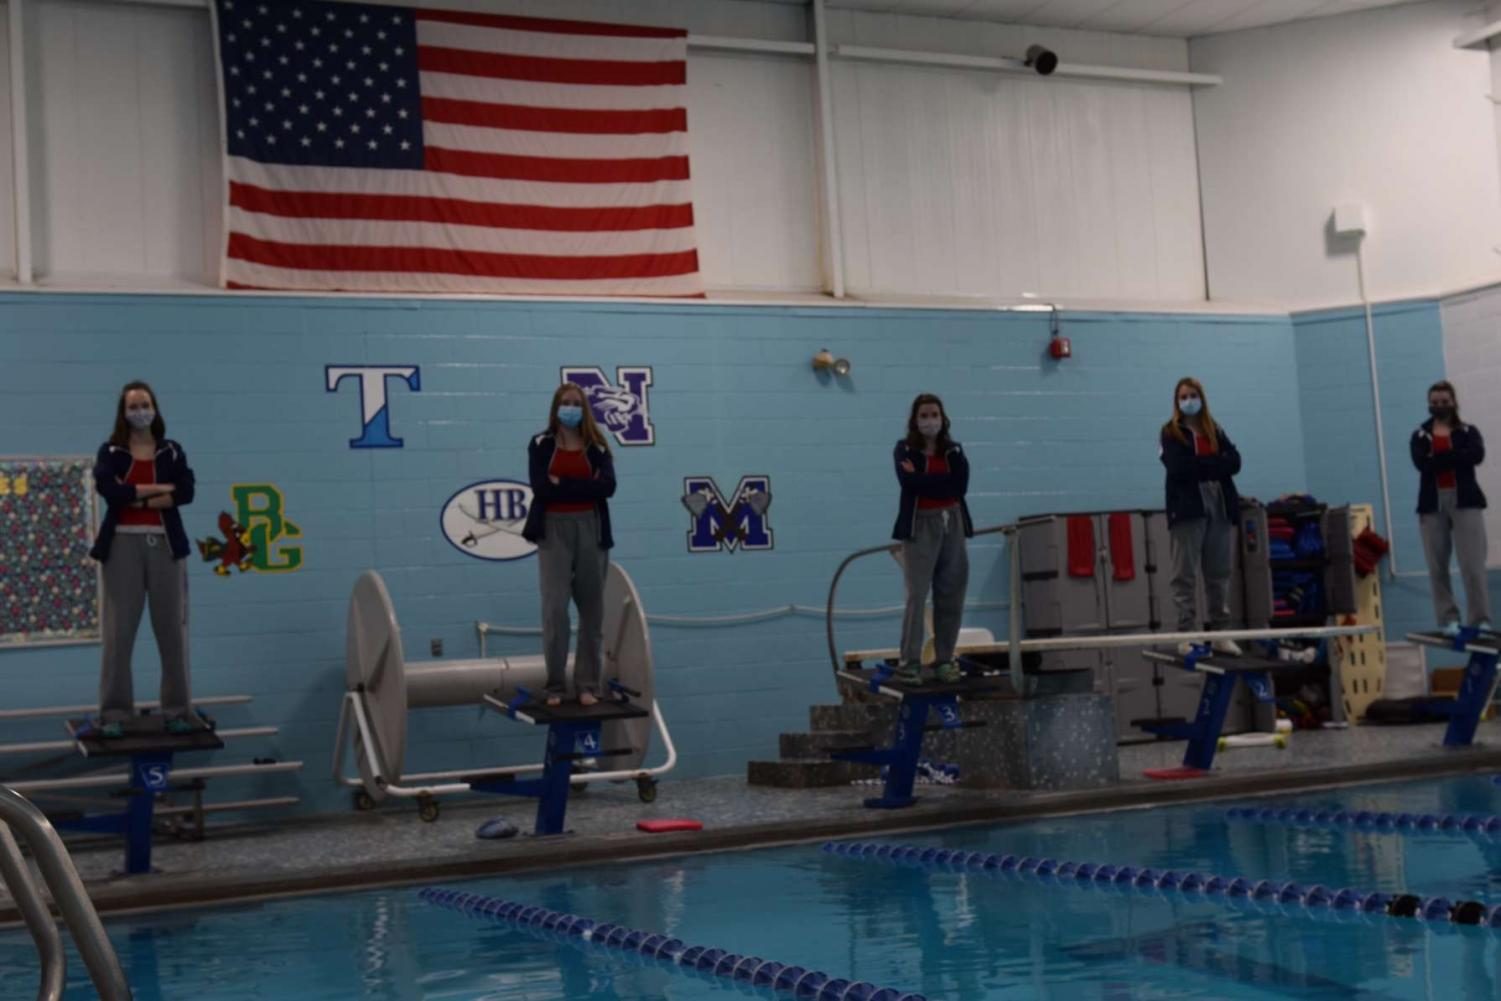 """Senior swimmers (left to right) Devin Kuchta, Delaneny Weimer, Alex Putney, Meghan Flannery, Hannah Lapointe all had senior years to remember. Filled with Covid restrictions, virtual meets, and lack of pool time, the team was still able to find success. """"Everyone on the team was just thankful to have a season and we took what we could get,"""" said Meghan Flannery '21."""